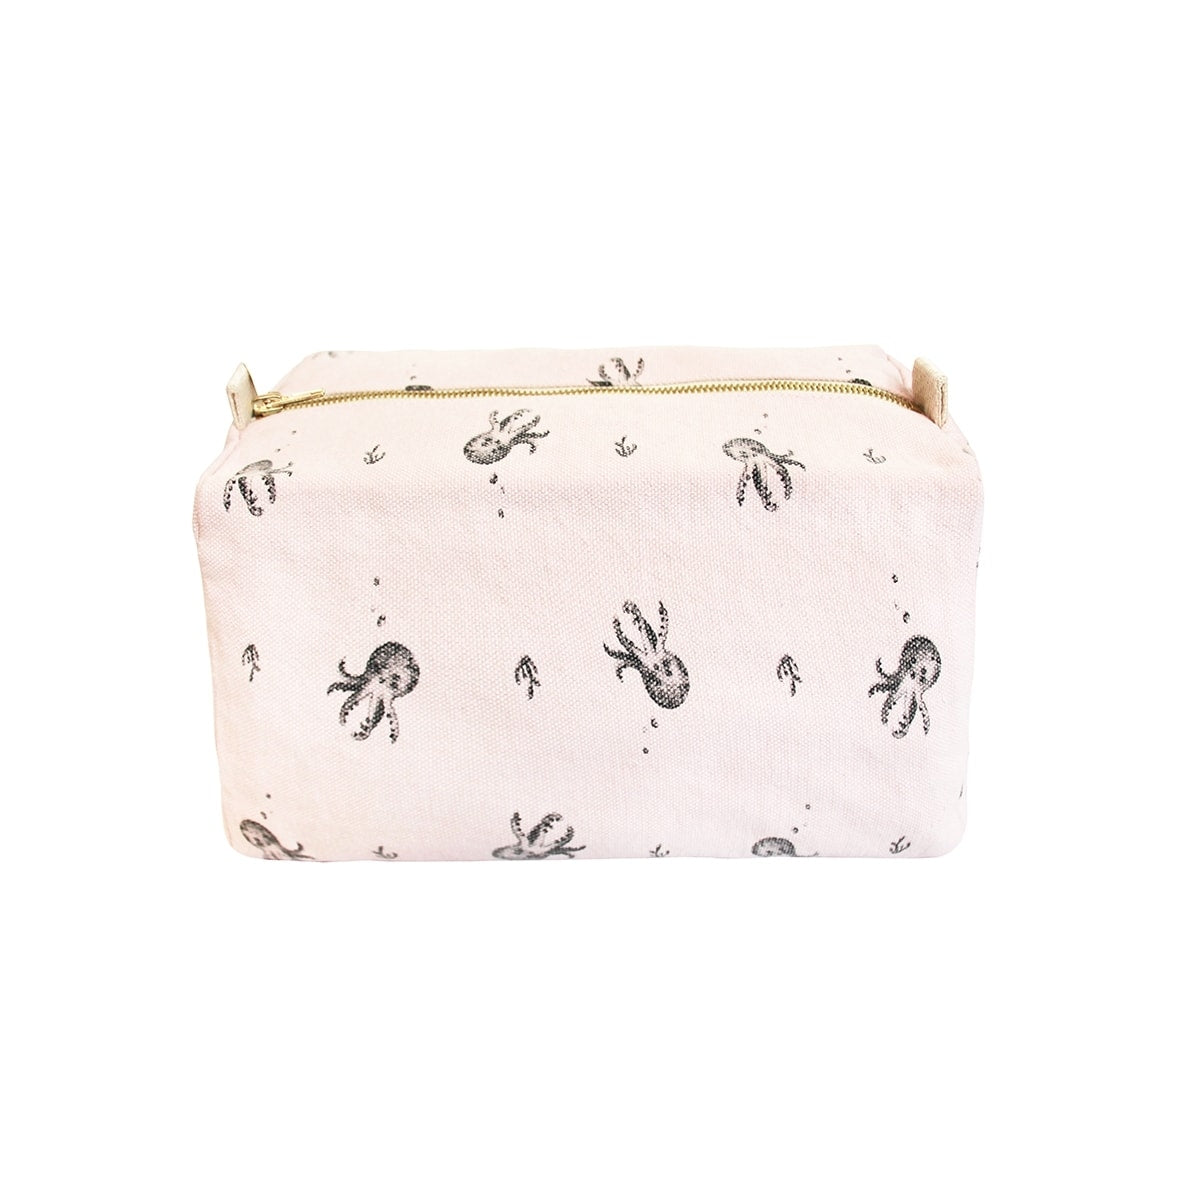 (pre-order) VIC wash bag octopus print - light pink 粉紅章魚化妝包